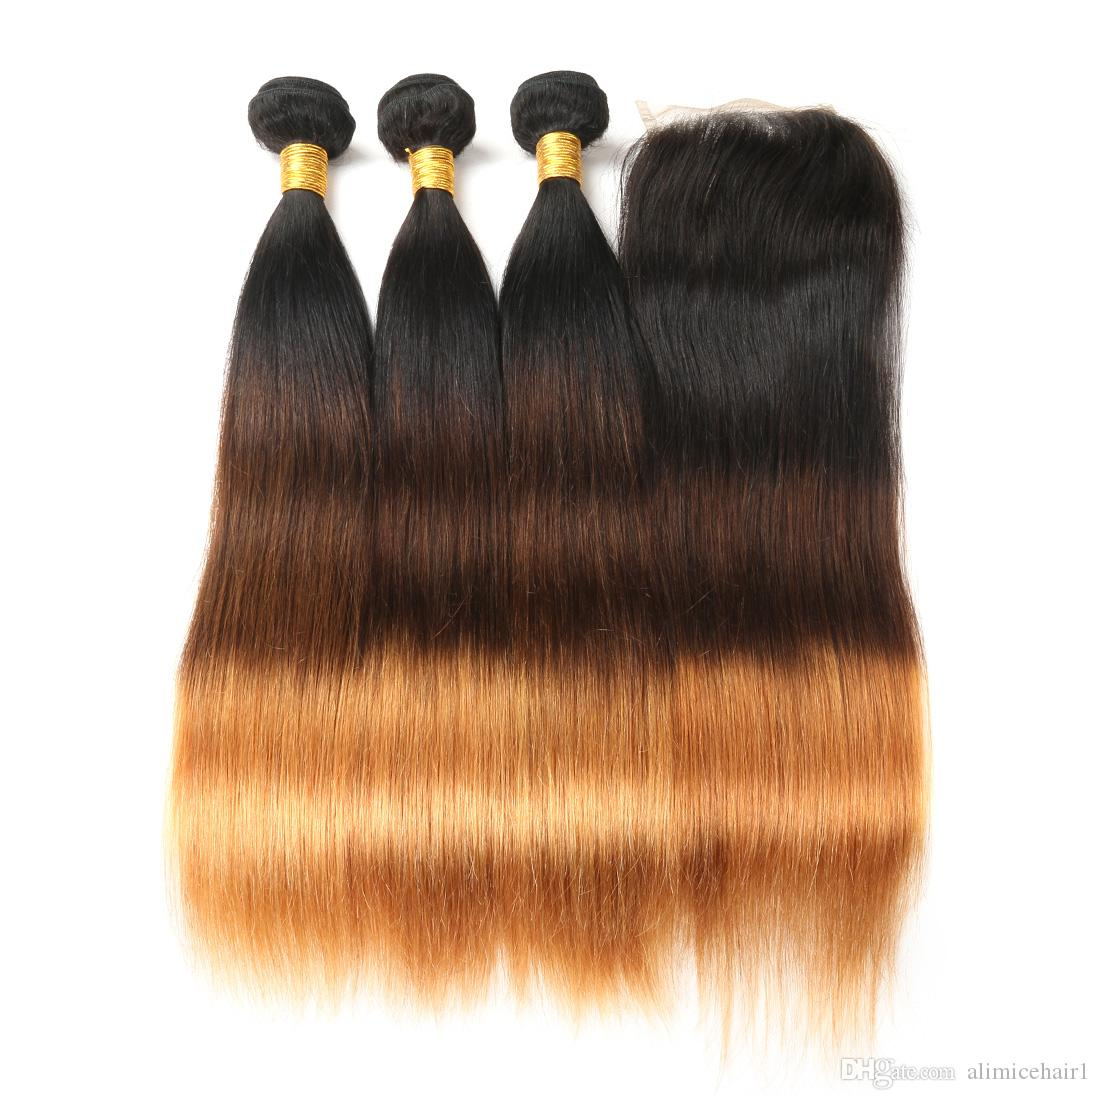 Ombre Brazilian Human Hair Bundles With Closure Straight Hair 3 Bundles With Lace Closure Honey Blonde Non-Remy Hair Extension